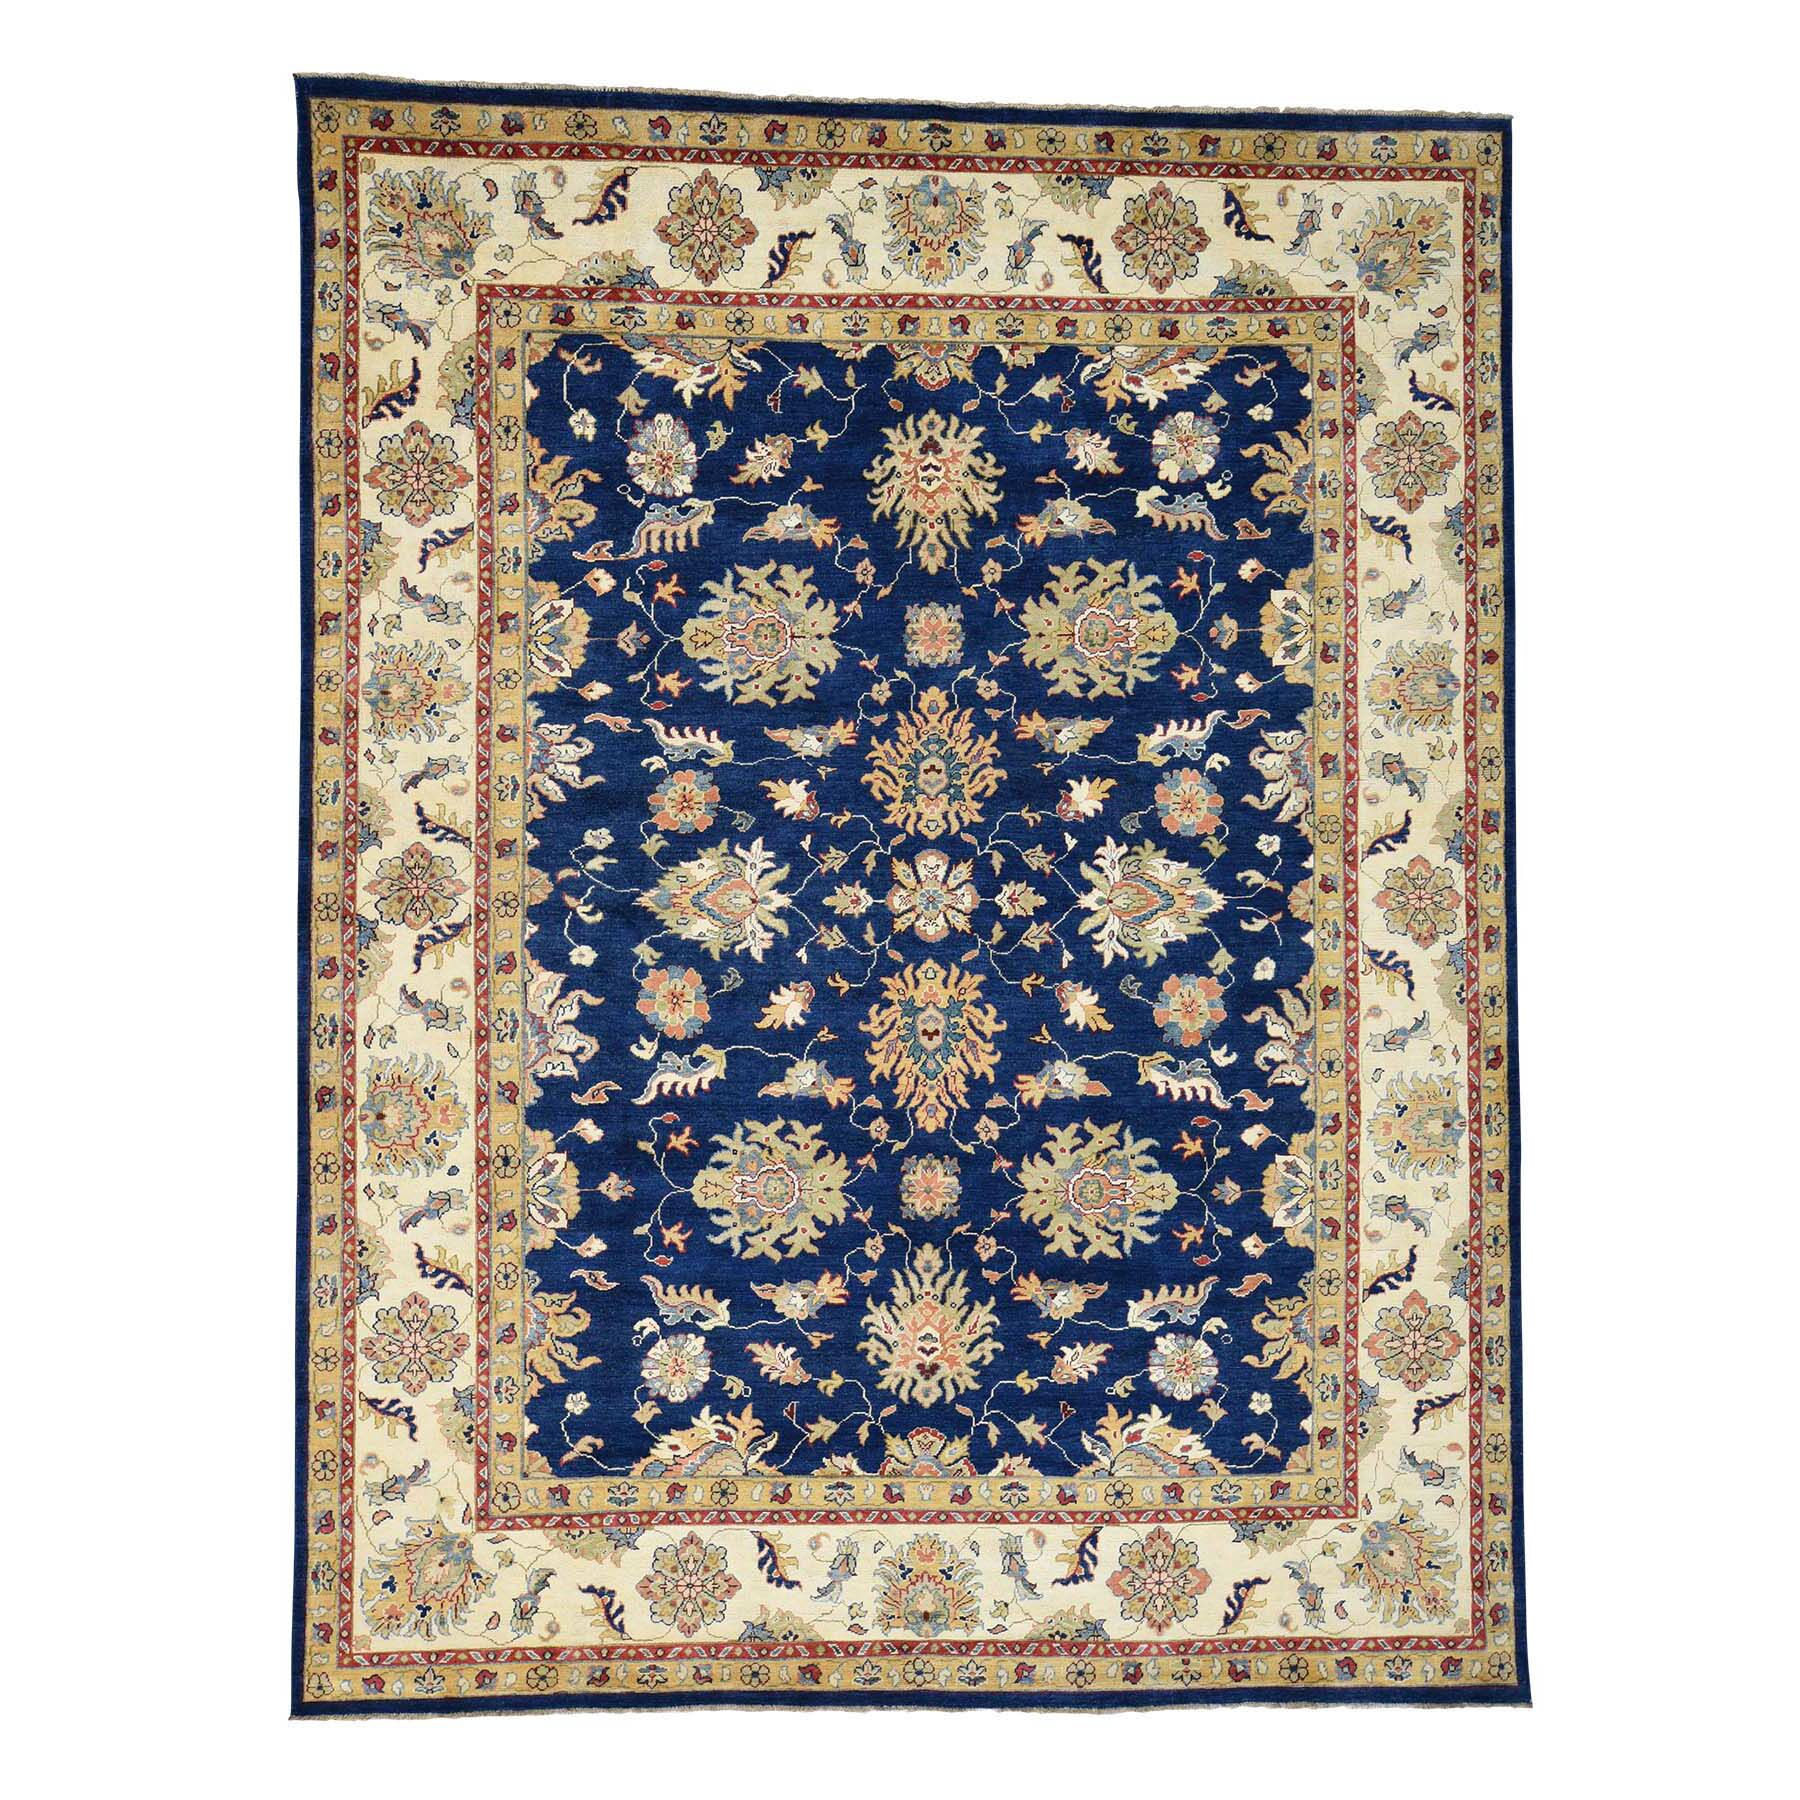 One-of-a-Kind Tillman Special Mahal Hand-Knotted Navy Blue/Yellow Area Rug